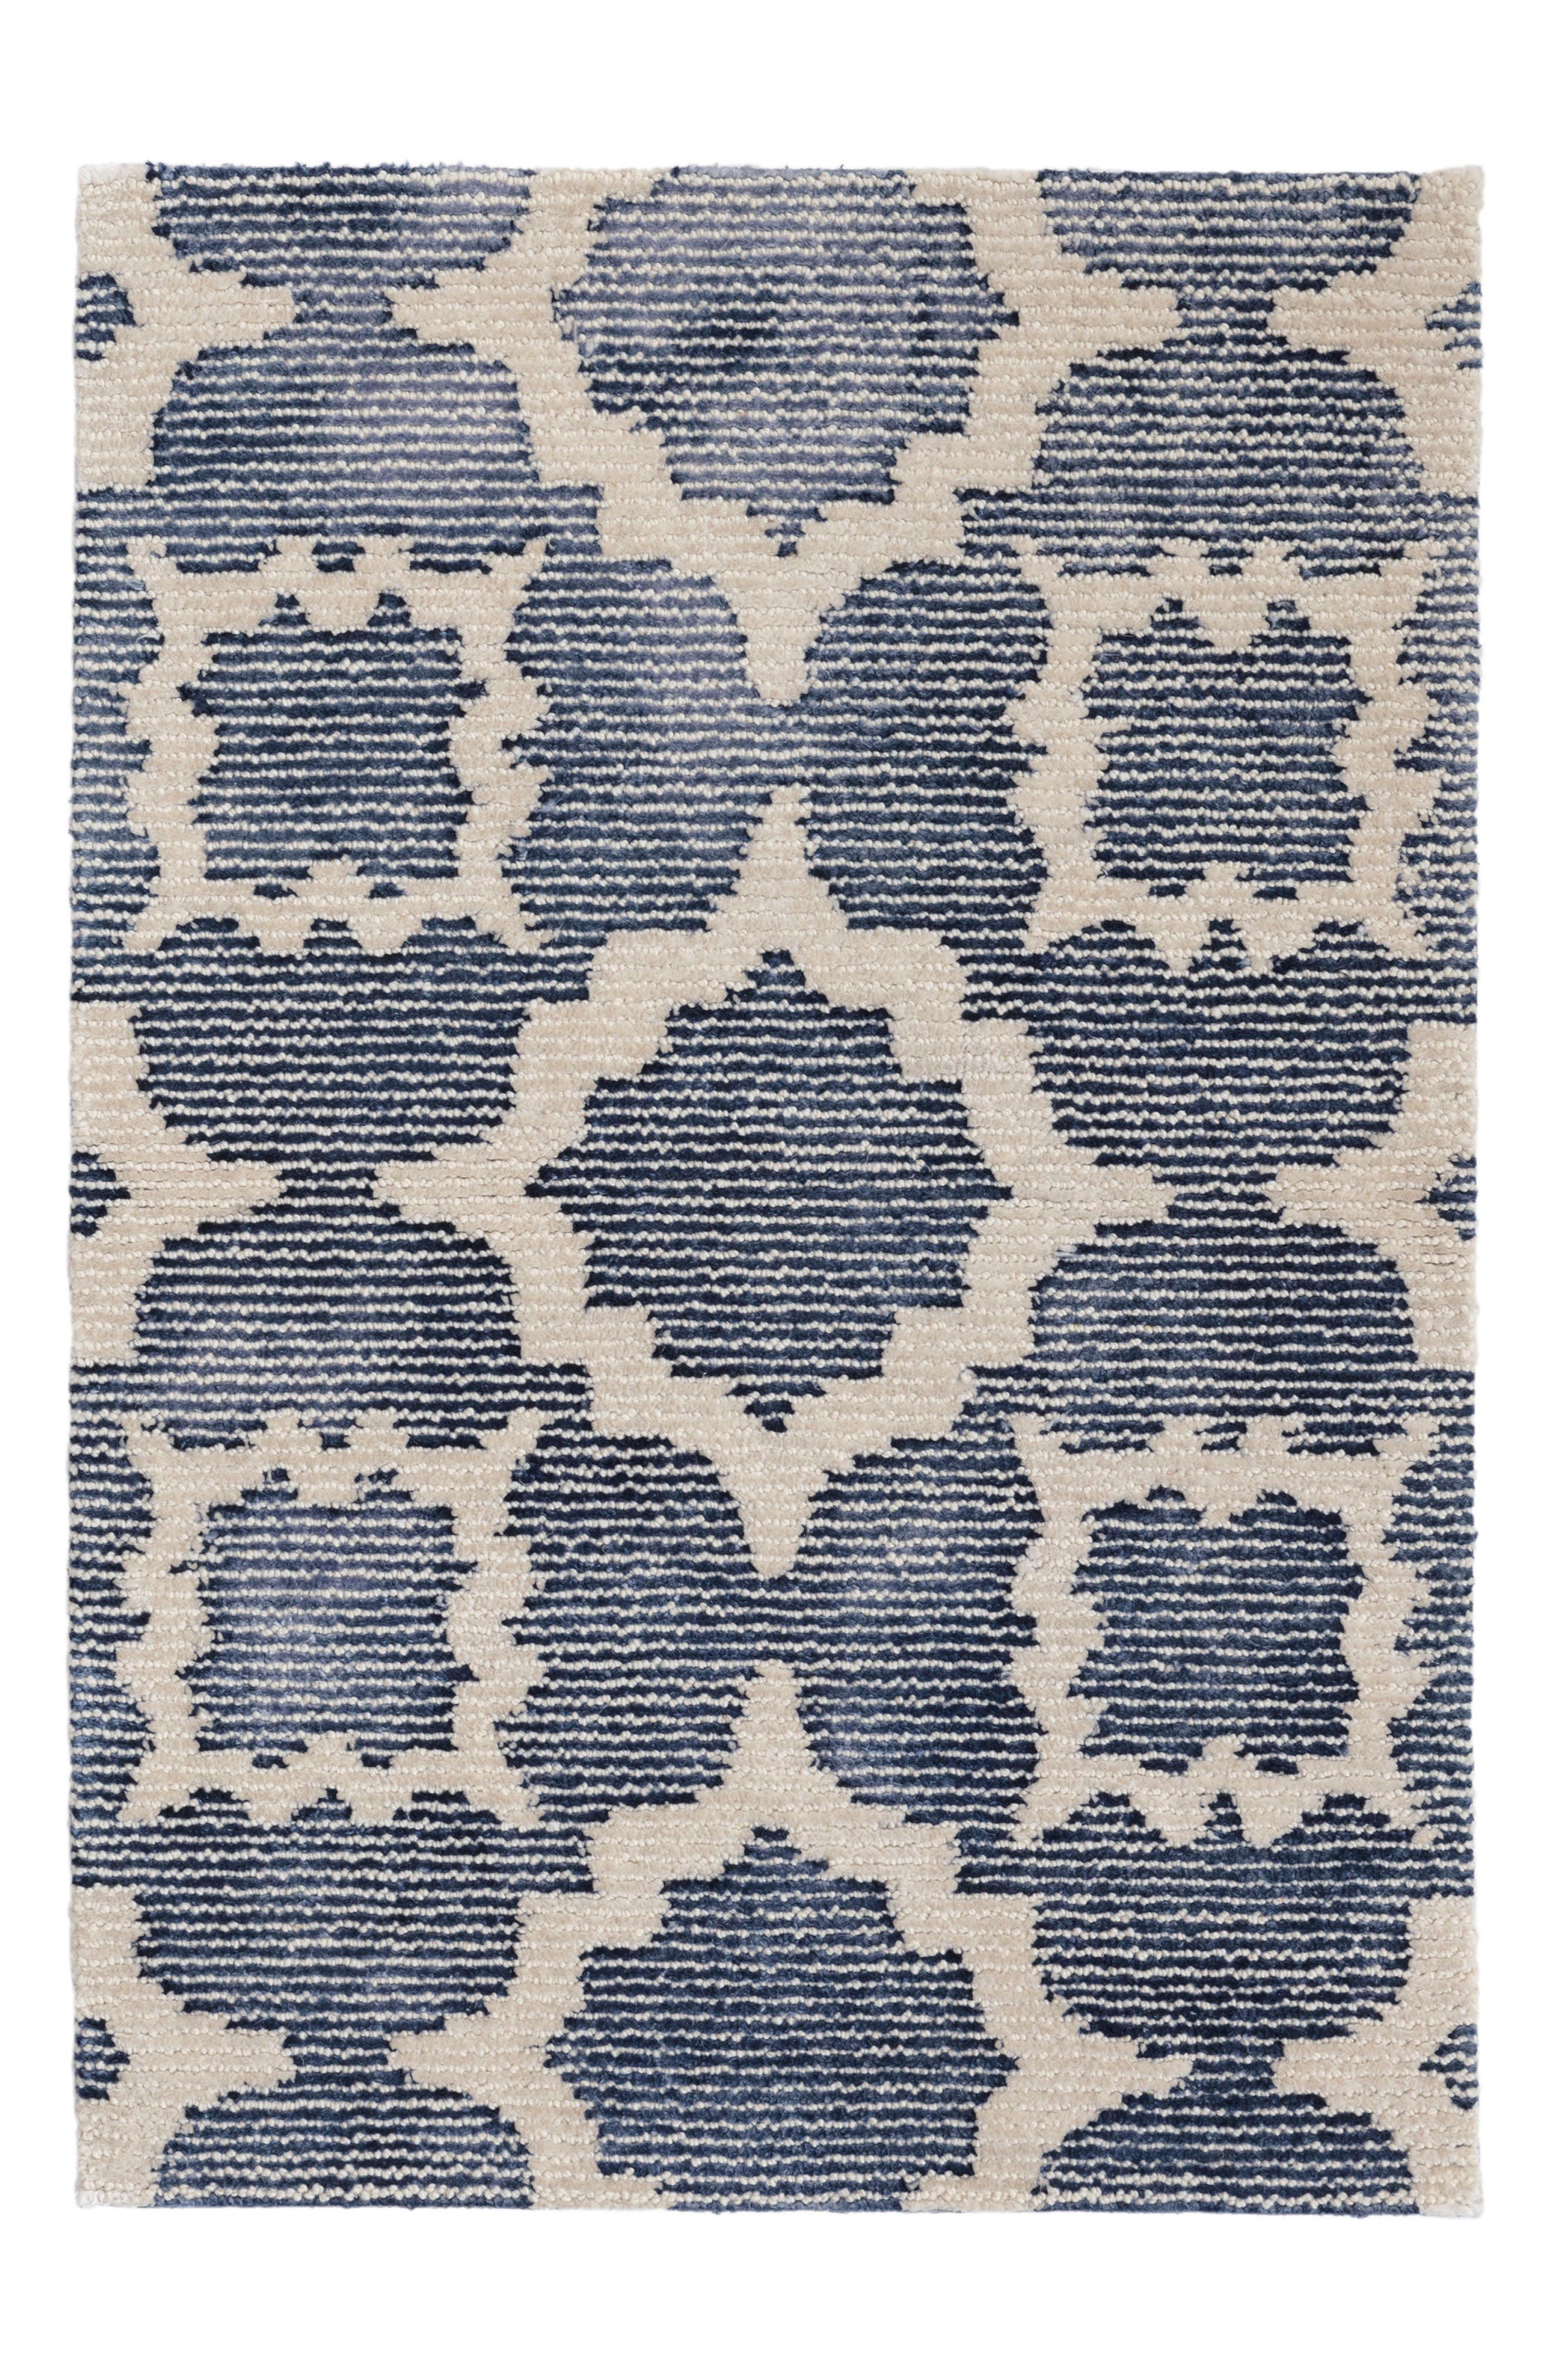 Alternate Image 1 Selected - Dash & Albert China Hand Knotted Wool Blend Rug